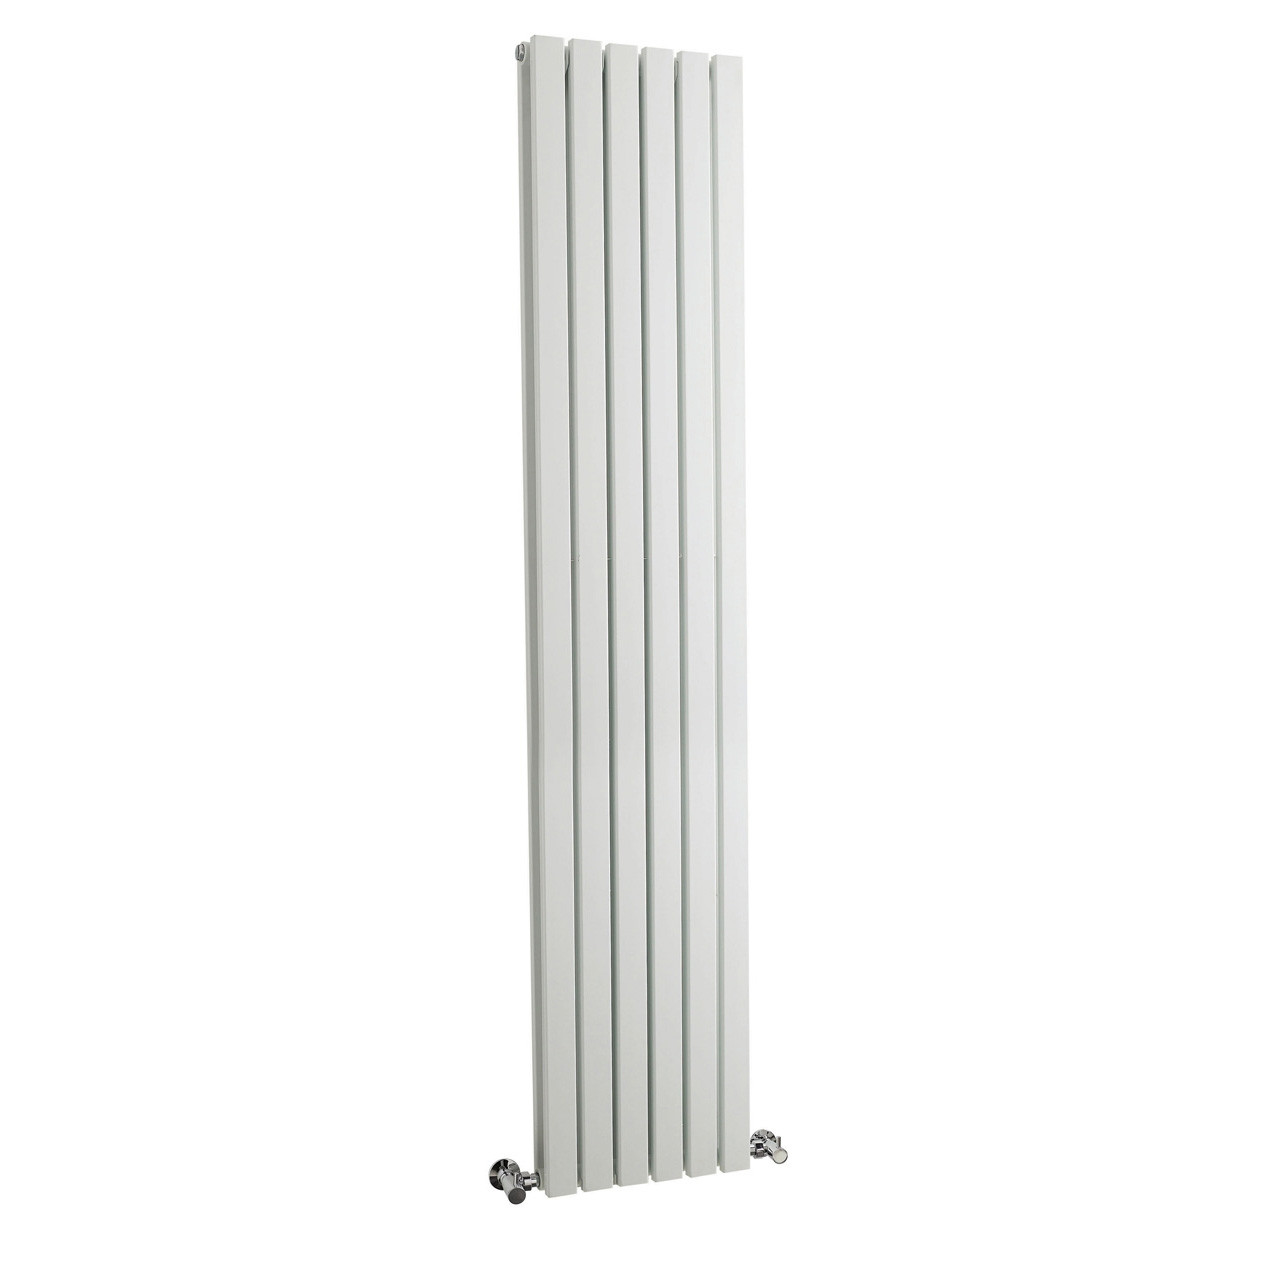 Hudson Reed Sloane Double Panel Radiator 1800mm x 354mm - HLW44